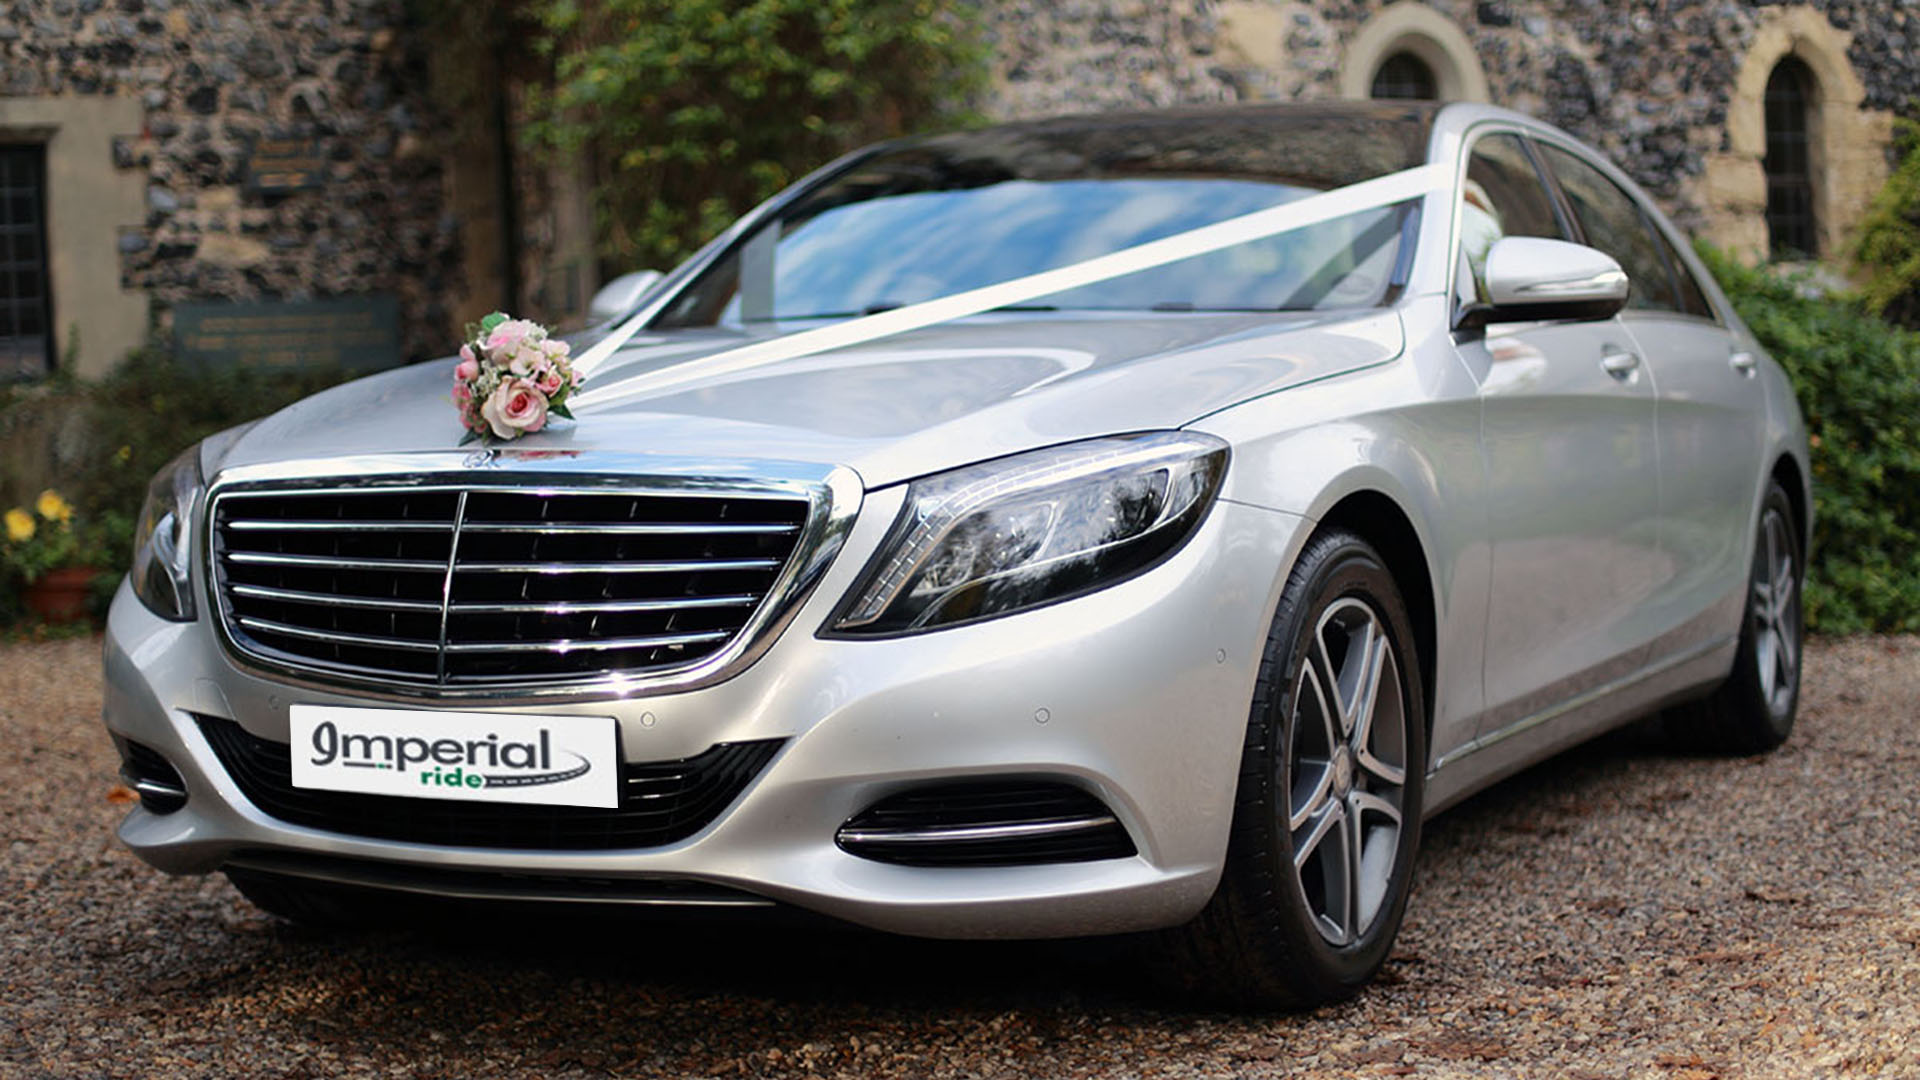 s-class-wedding-hire-in-wandsworth